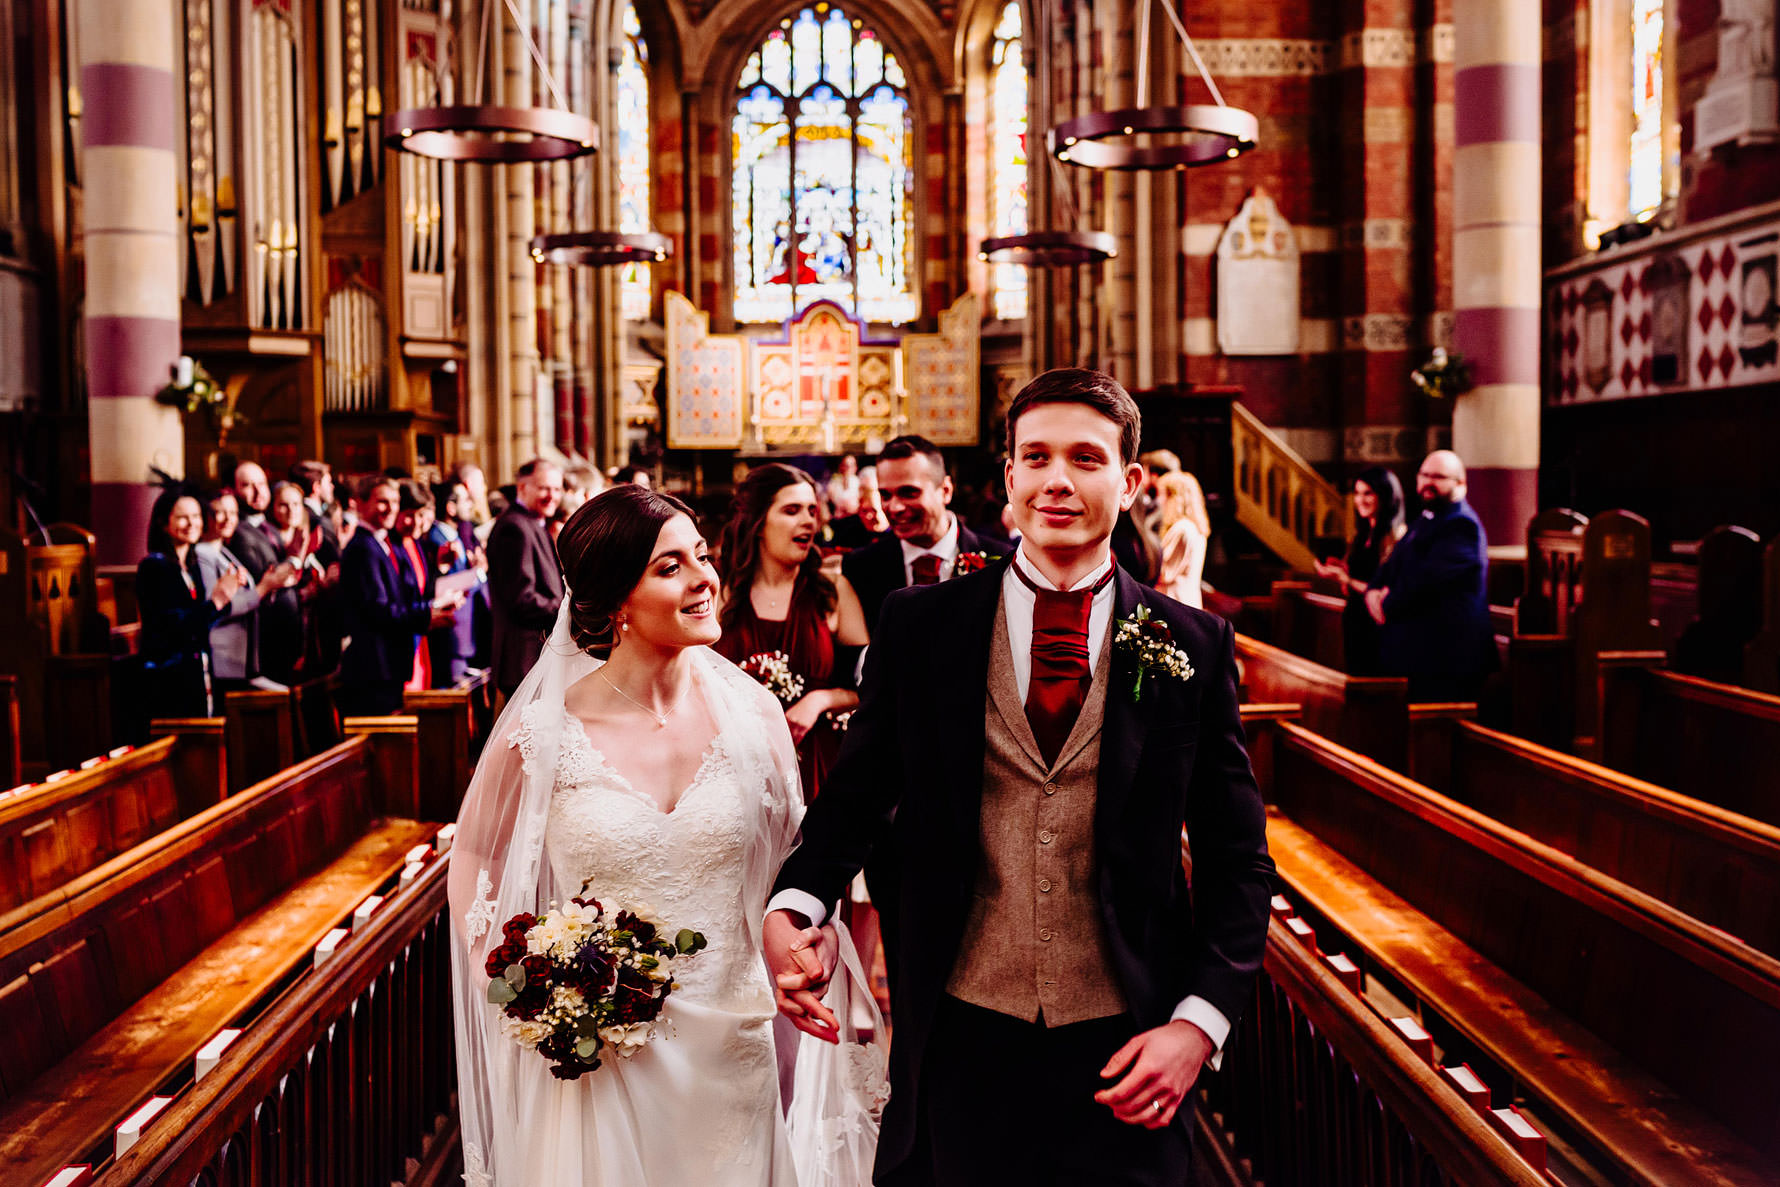 a newly married couple walk up the aisle